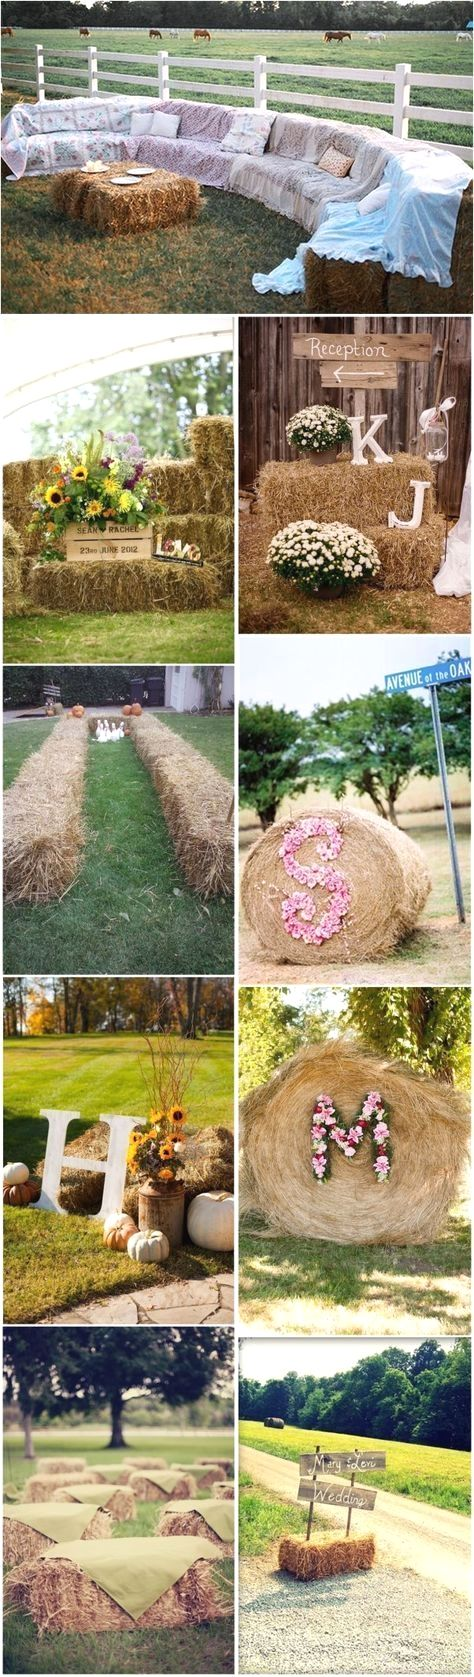 best edna images on pinterest country weddings cowboys and farms